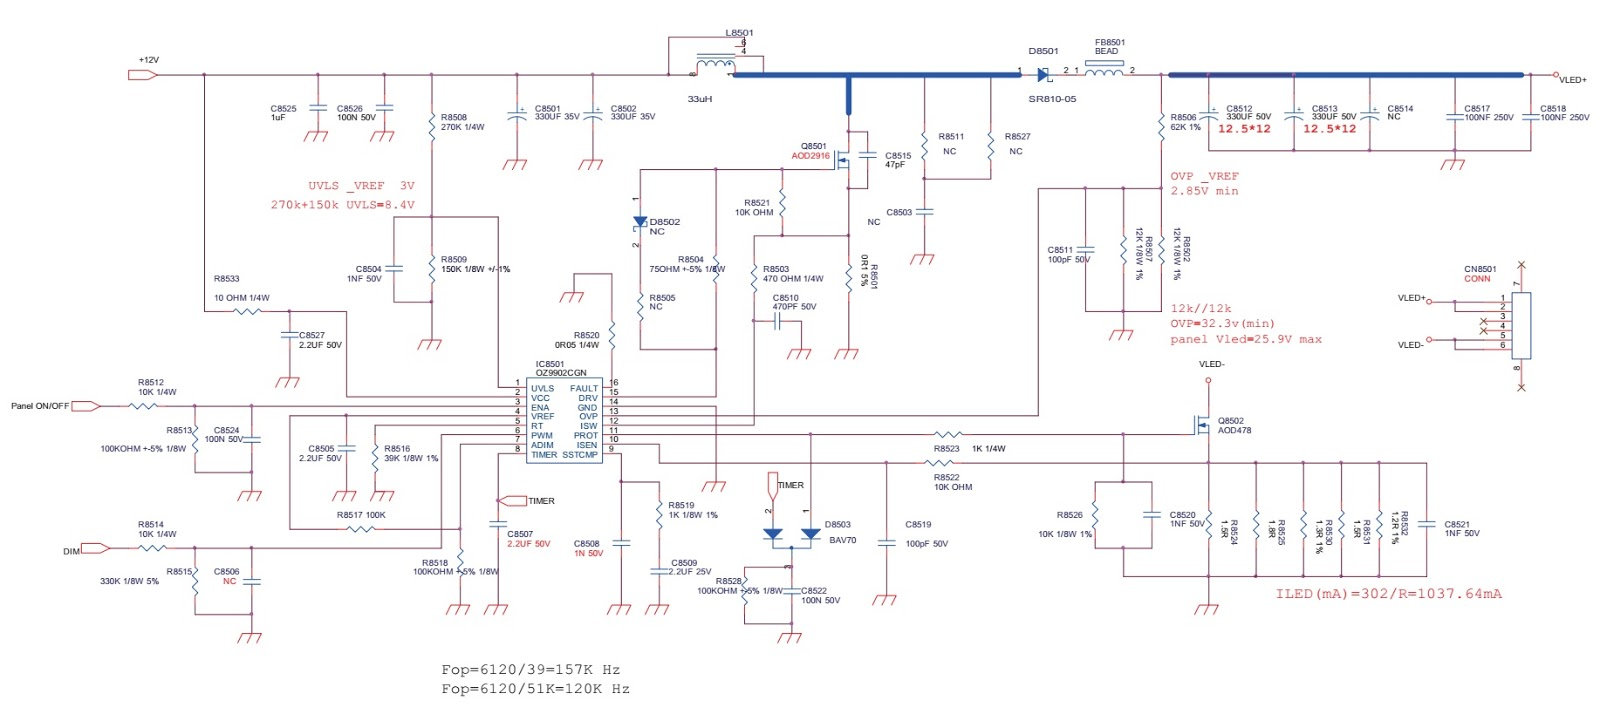 Ystsw320 Schematic Circuit Diagram Subwoofer Electro Help ... on